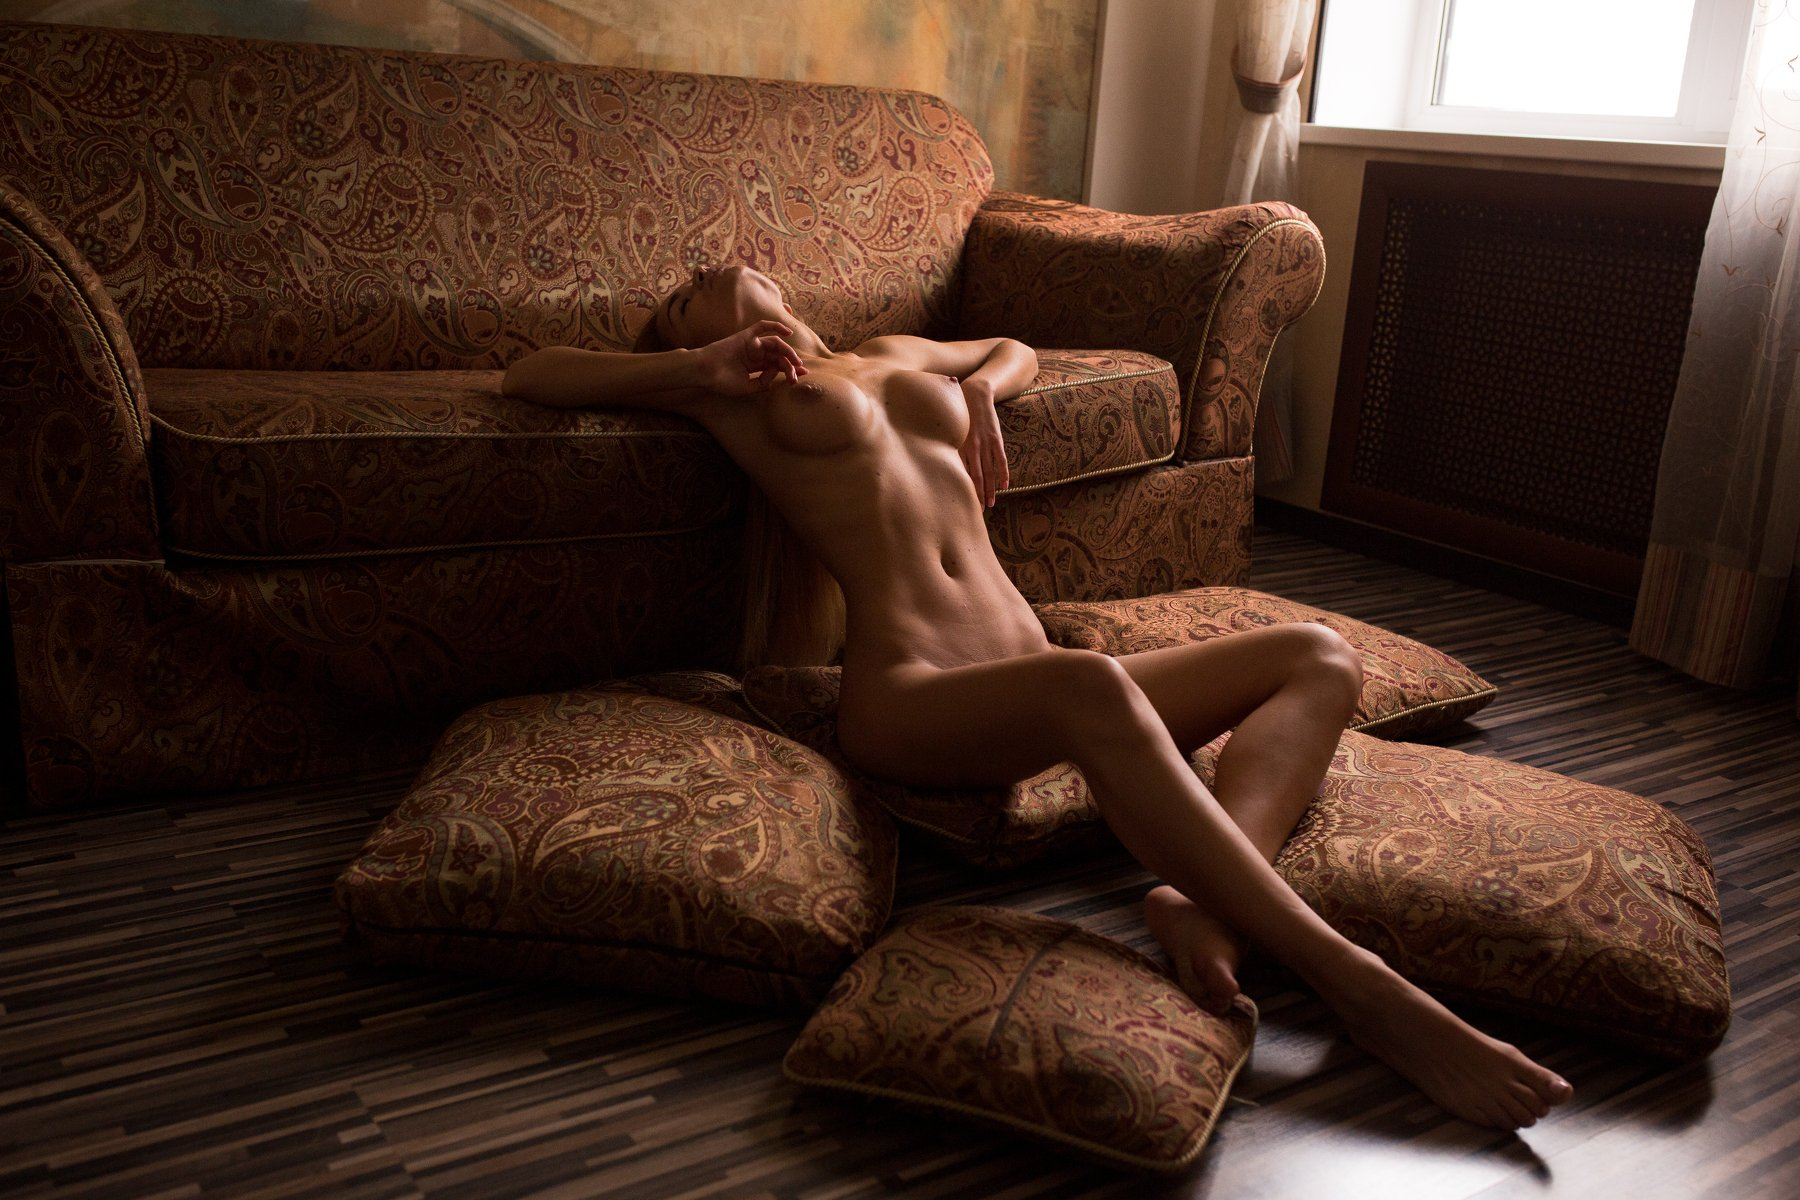 Glamour and nude photography